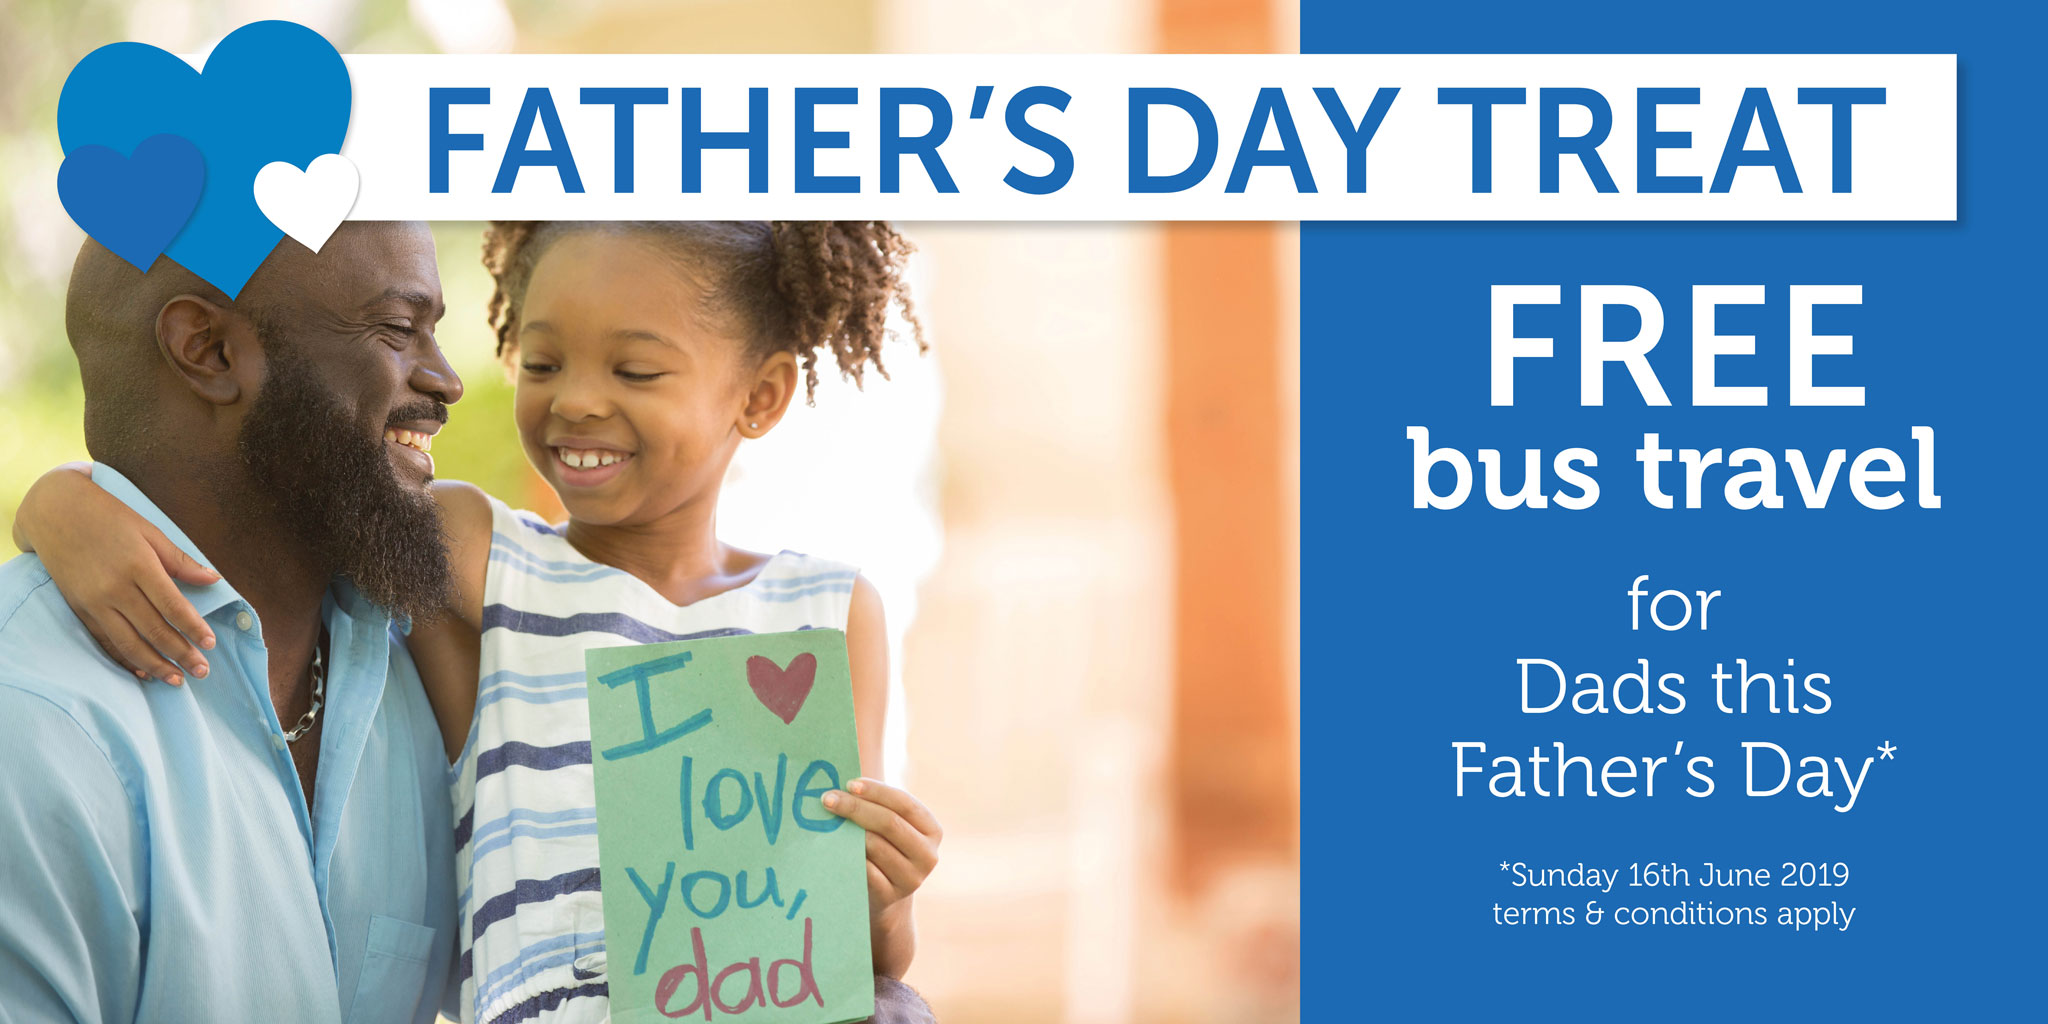 Free travel for dads this Father's Day - Sunday 16th June